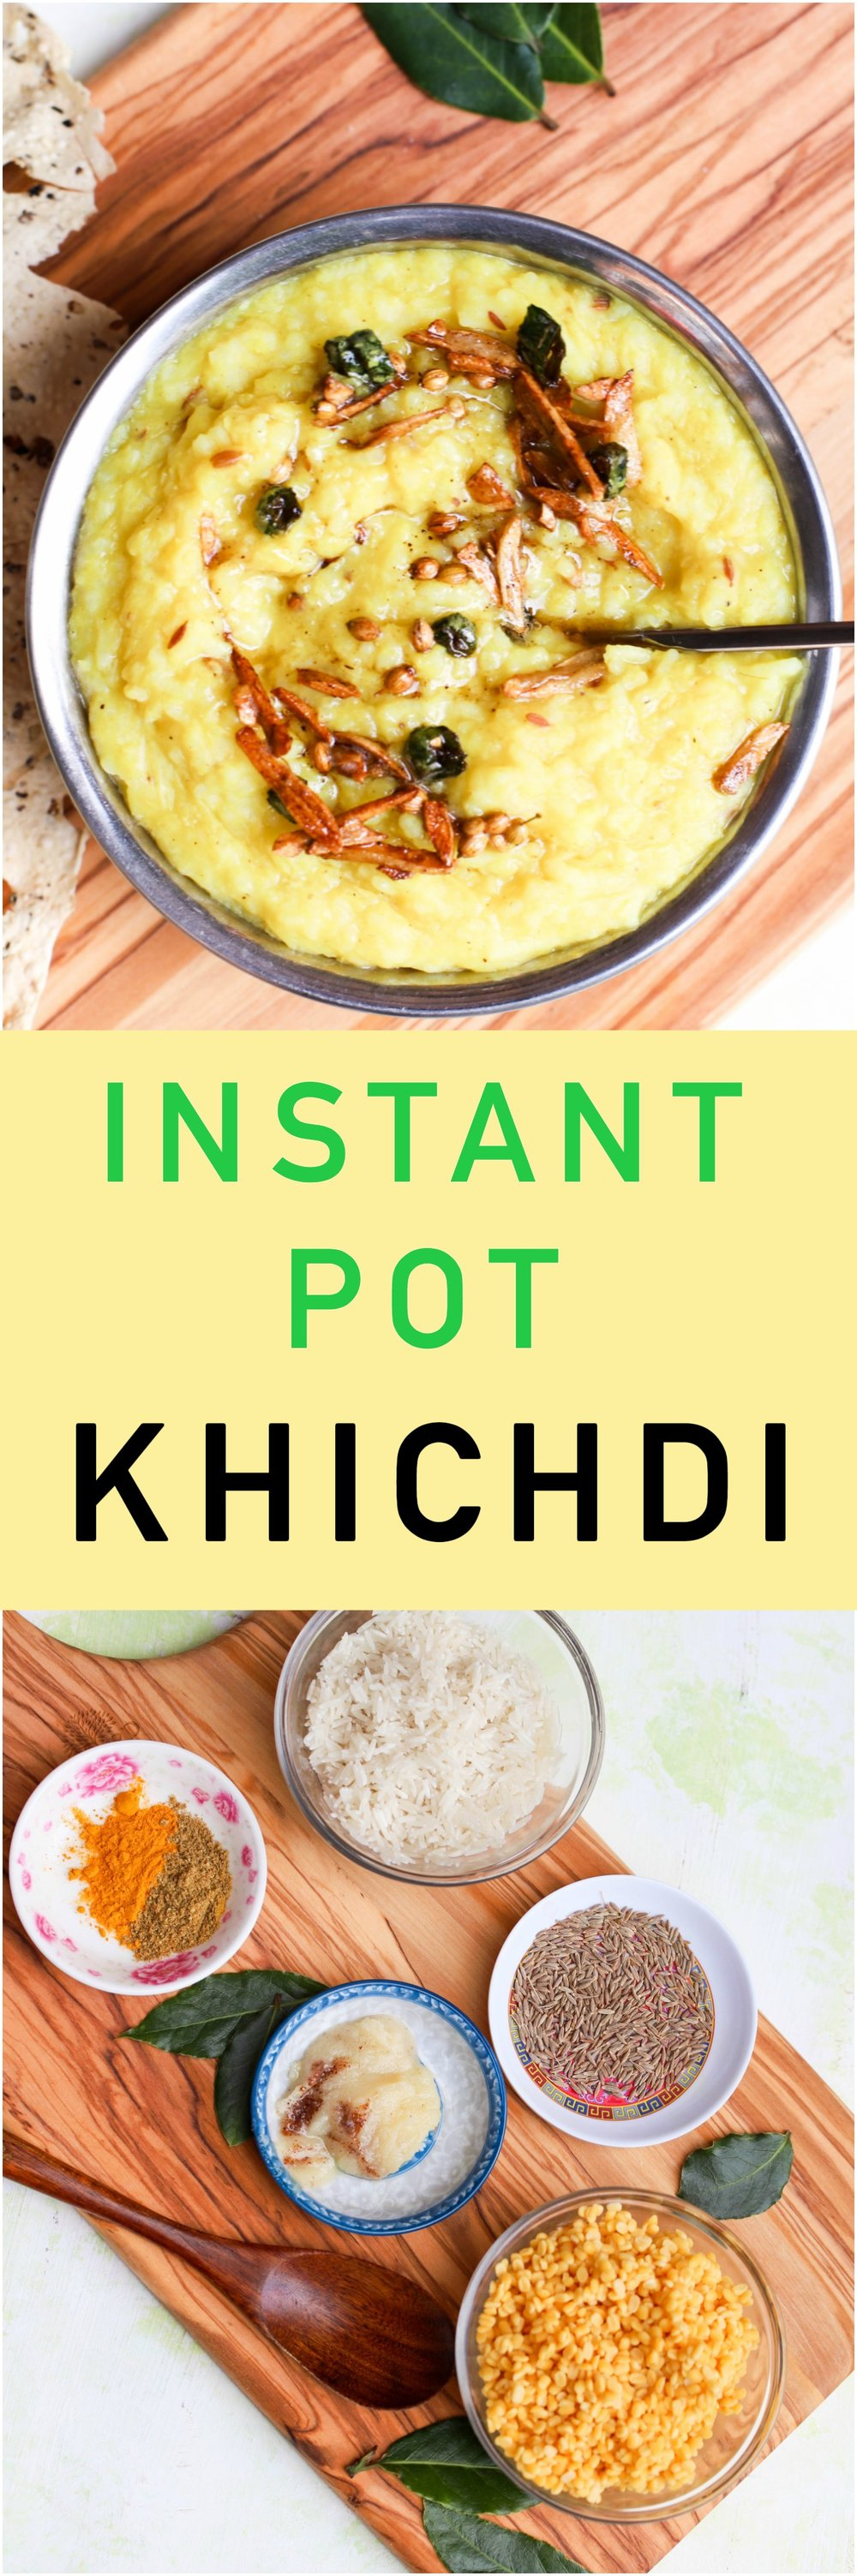 Instant Pot Khichdi is a one-pot soothing porridge with rice, lentils, and spices. Naturally gluten-free and vegan friendly. #instantpot